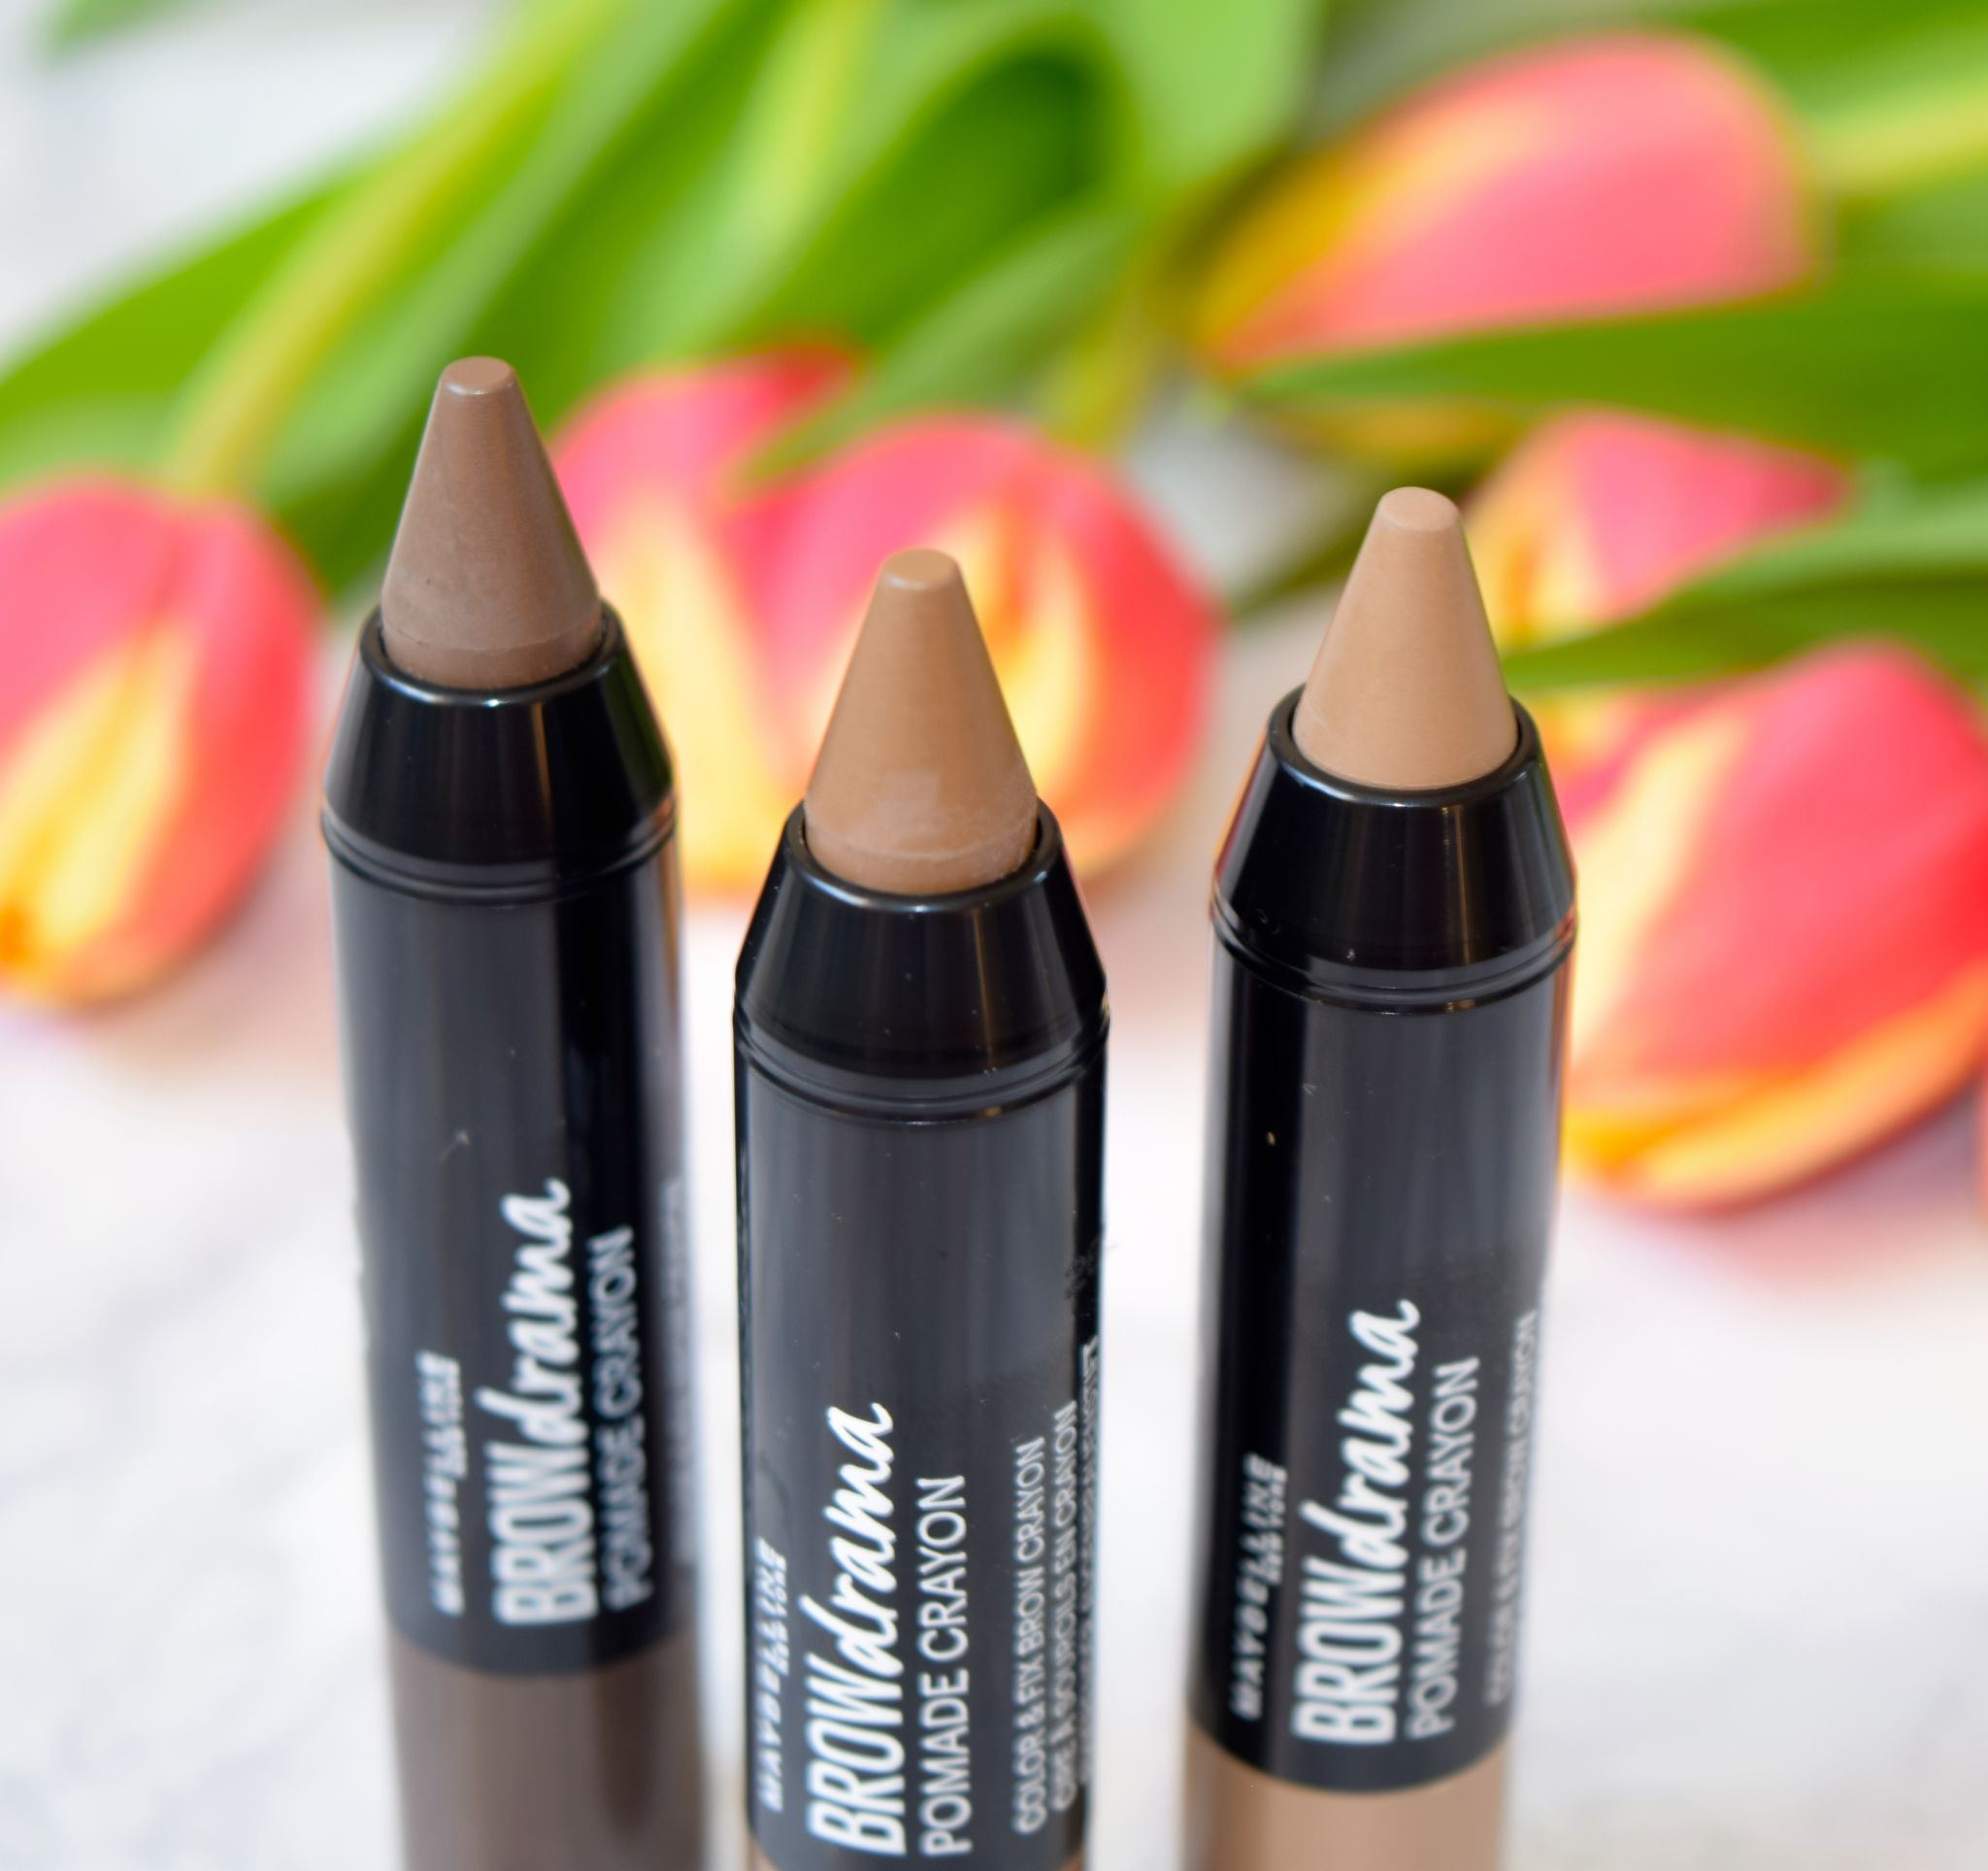 Maybelline Brow Drama Pomade Crayon 2